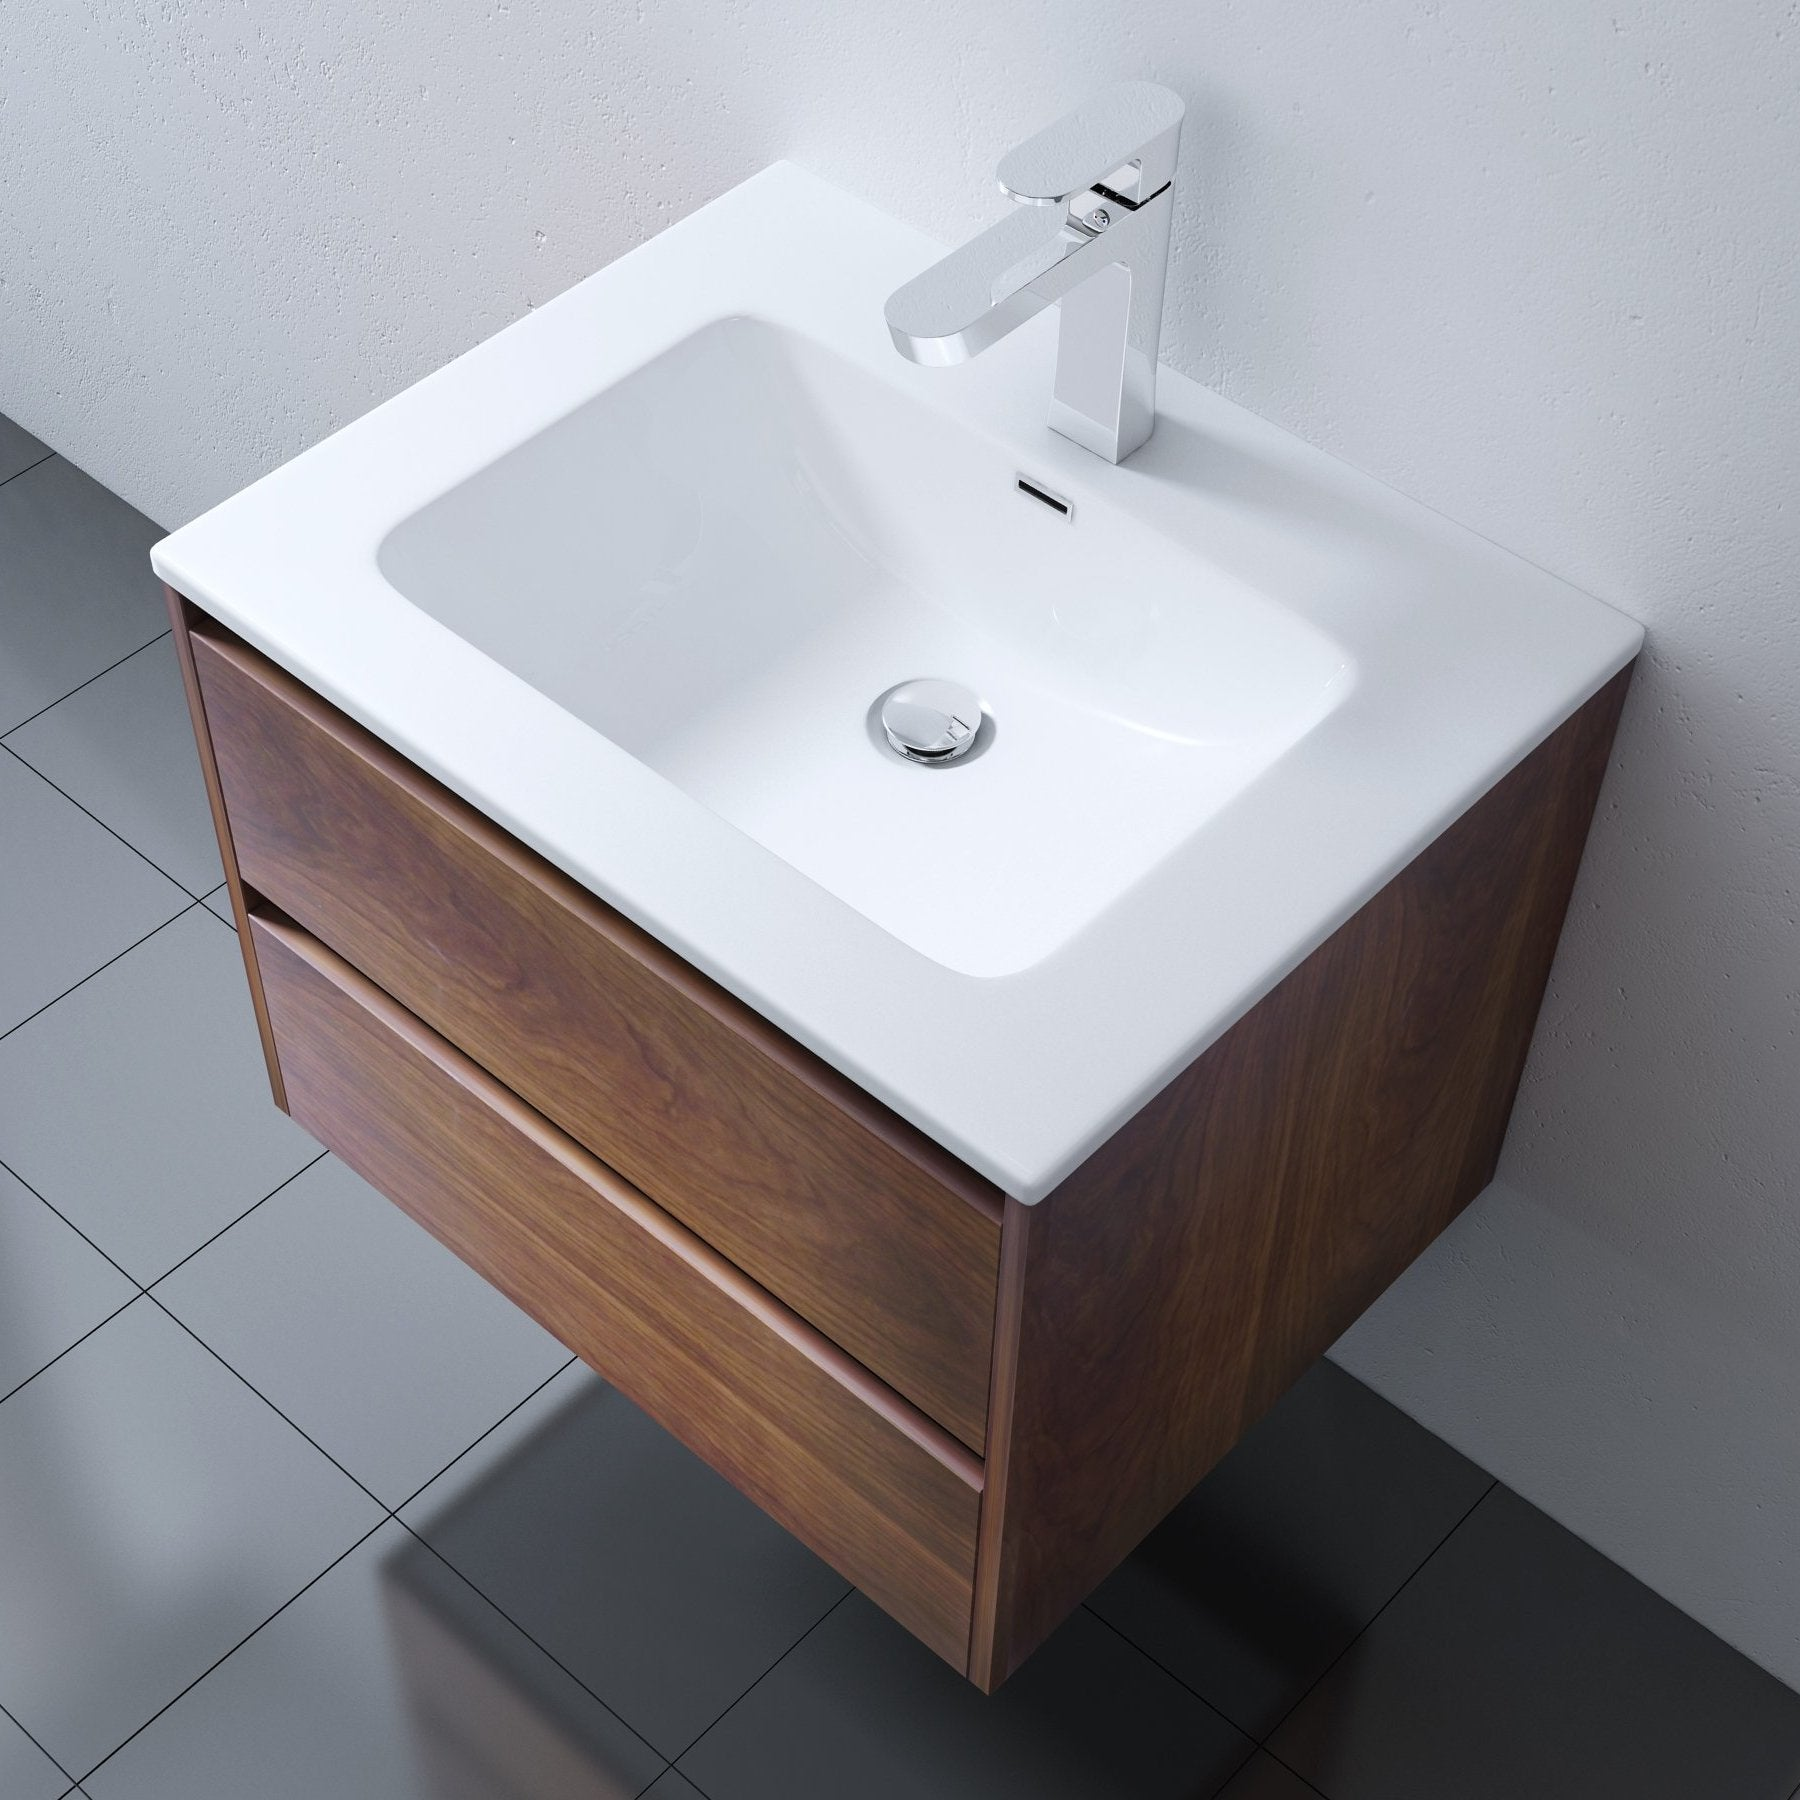 Positano Wall Mounted Vanity Unit With Basin